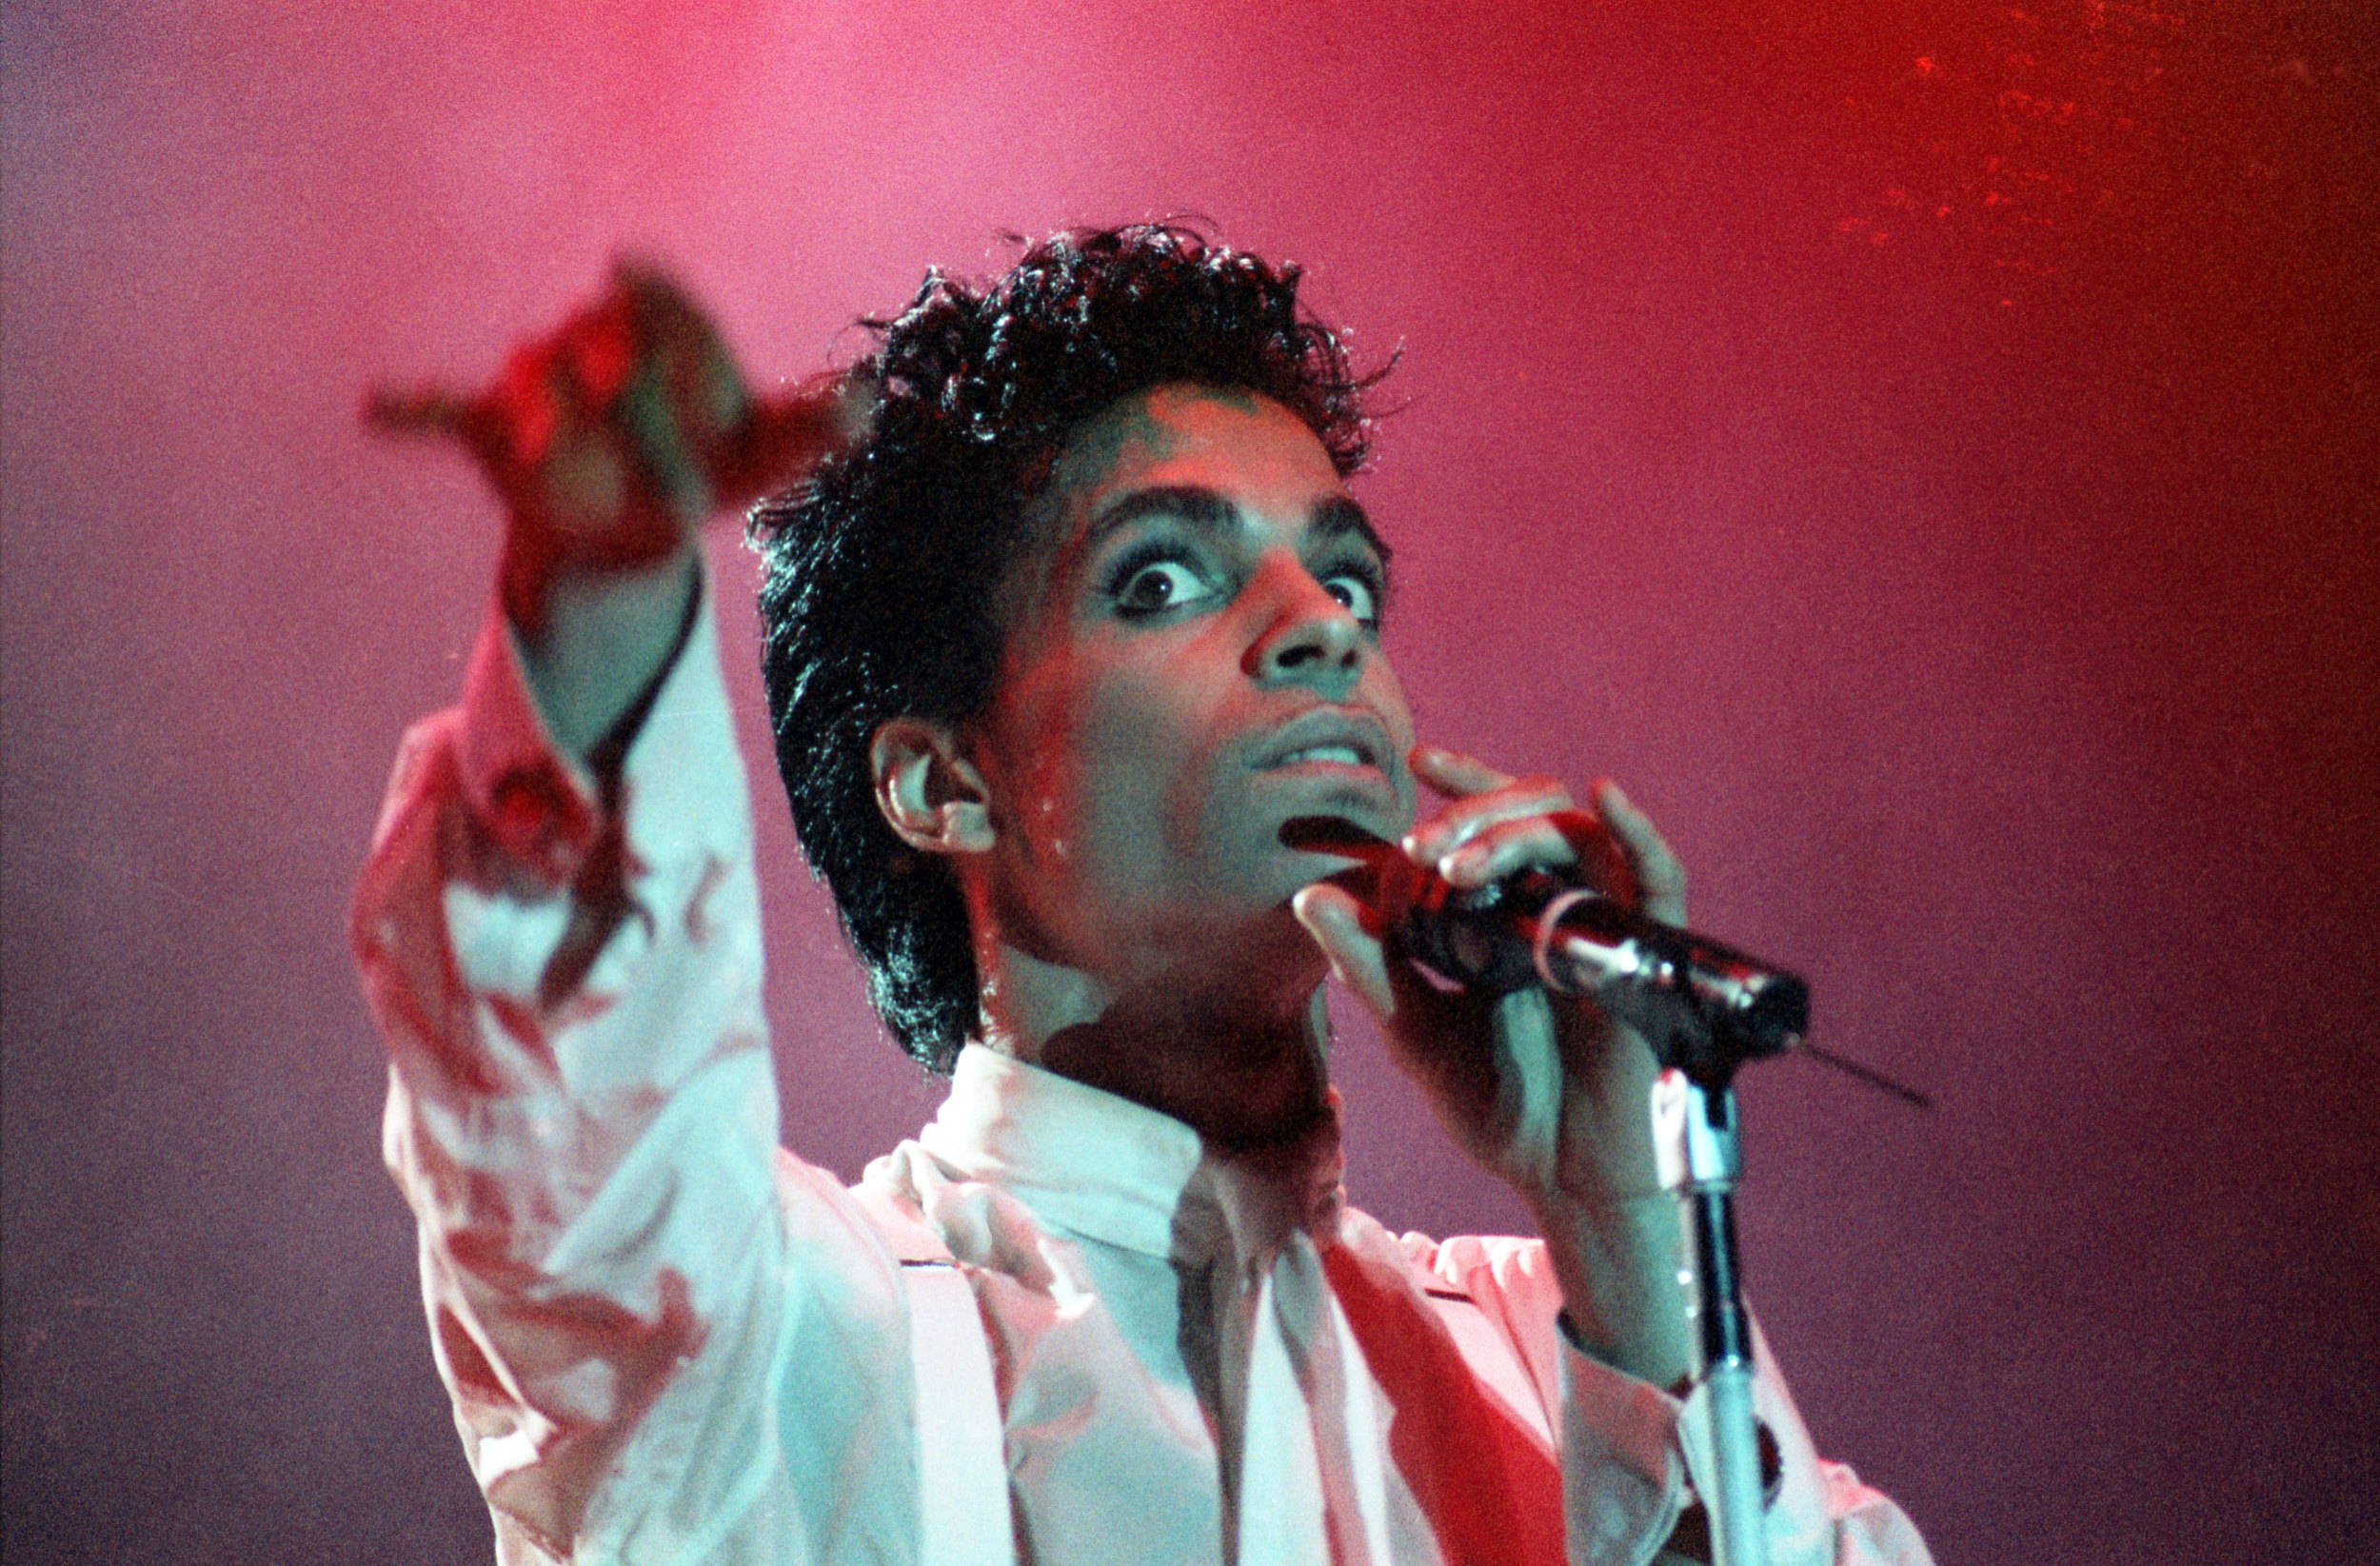 pop muziek popmuziek muzikanten artiest Prince Ahoy Rotterdam 17 8 1986 Parade Tour Under The Cherry Moon Tour funk rock